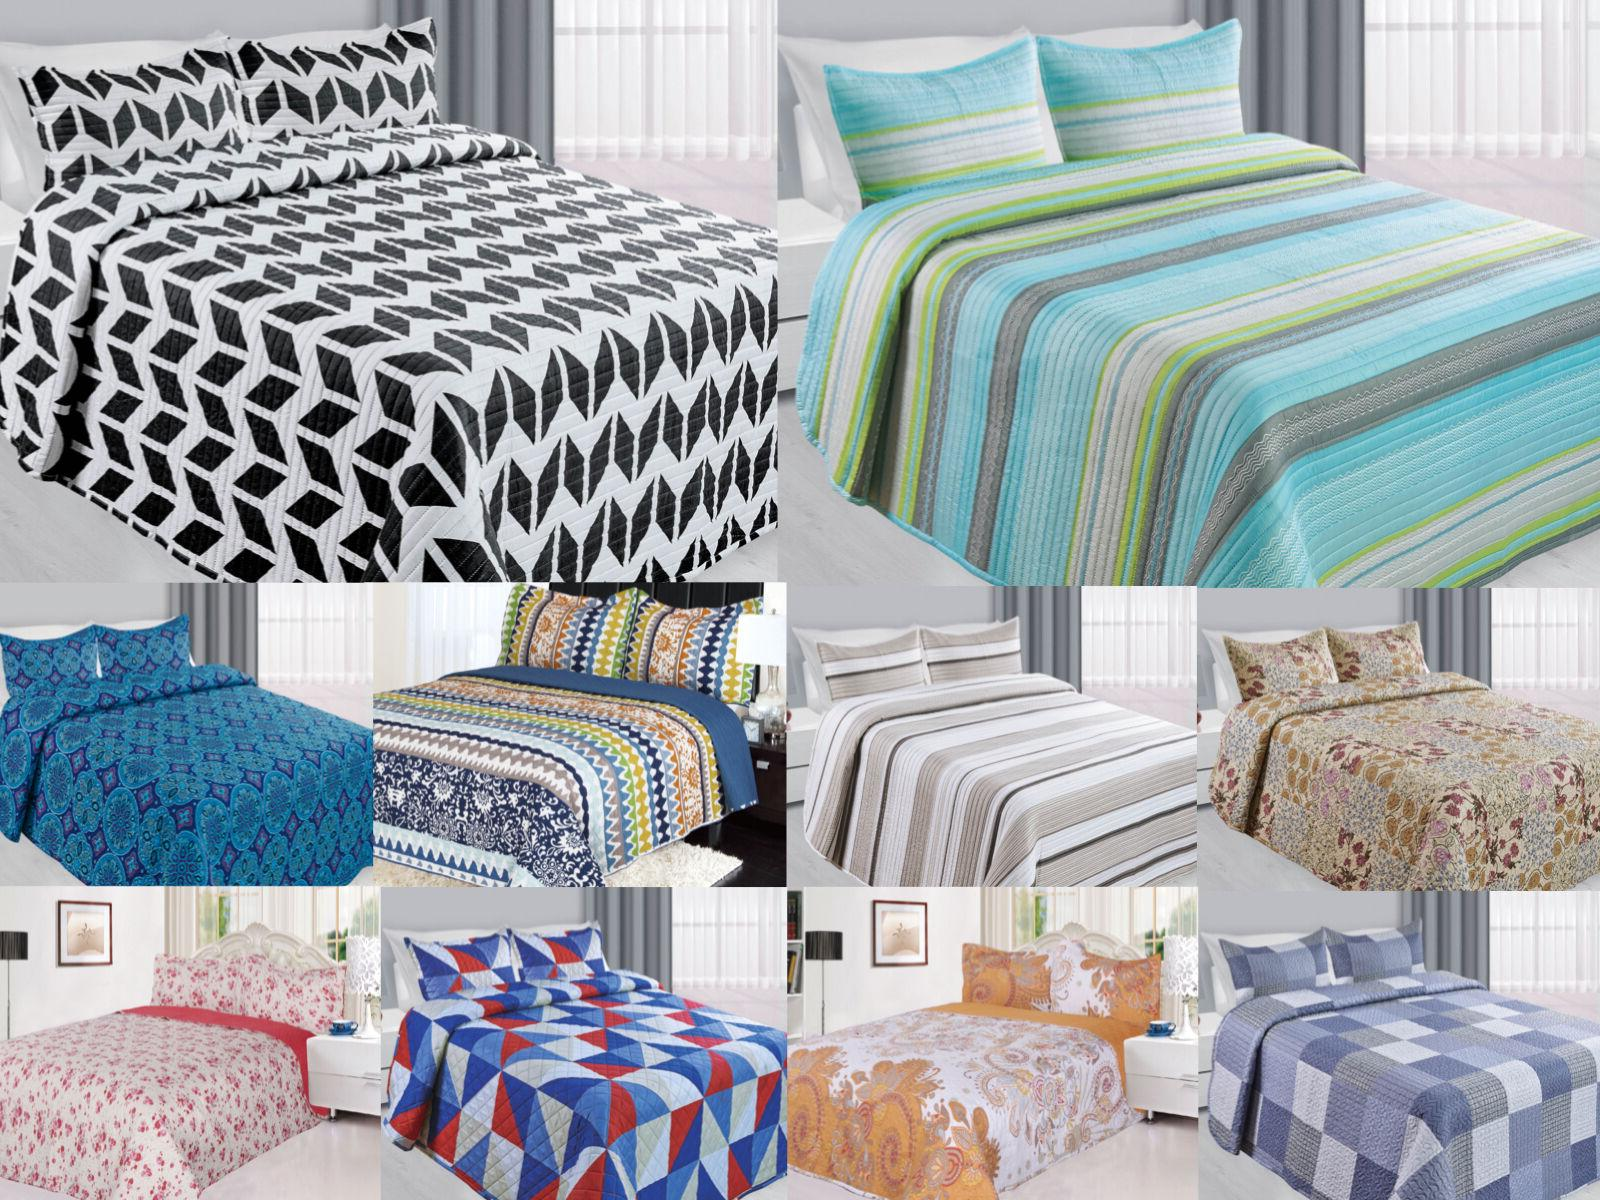 3 piece reversible quilted printed bedspread coverlet